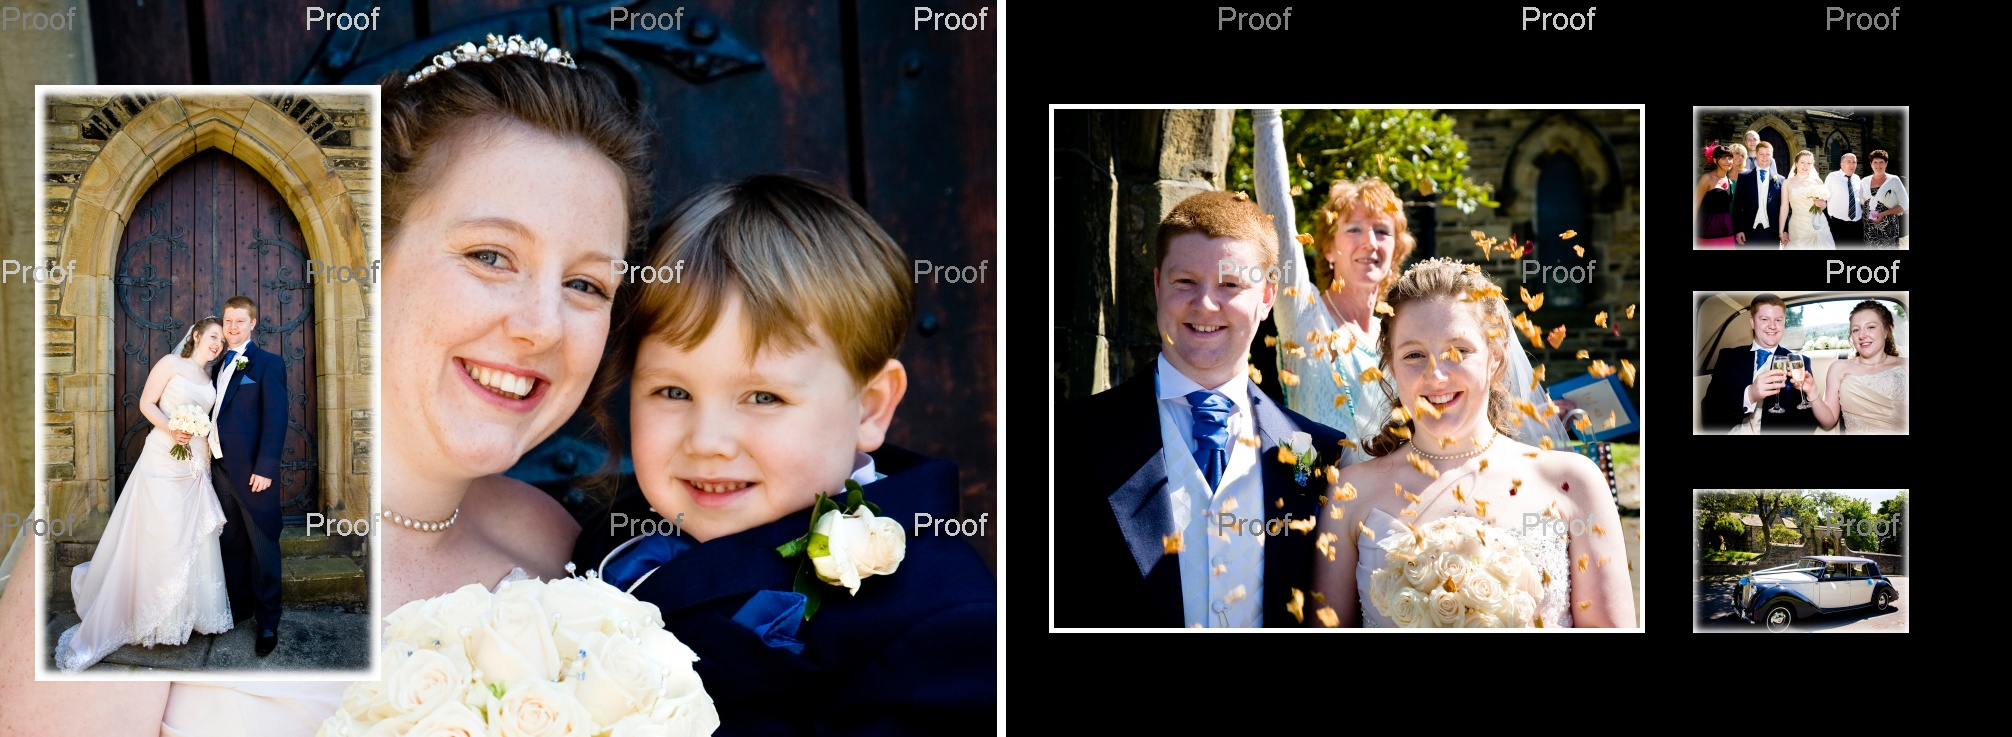 Pages 32-33 cute pageboy peeps round the picture with the bride, rose petal confetti & Champagne